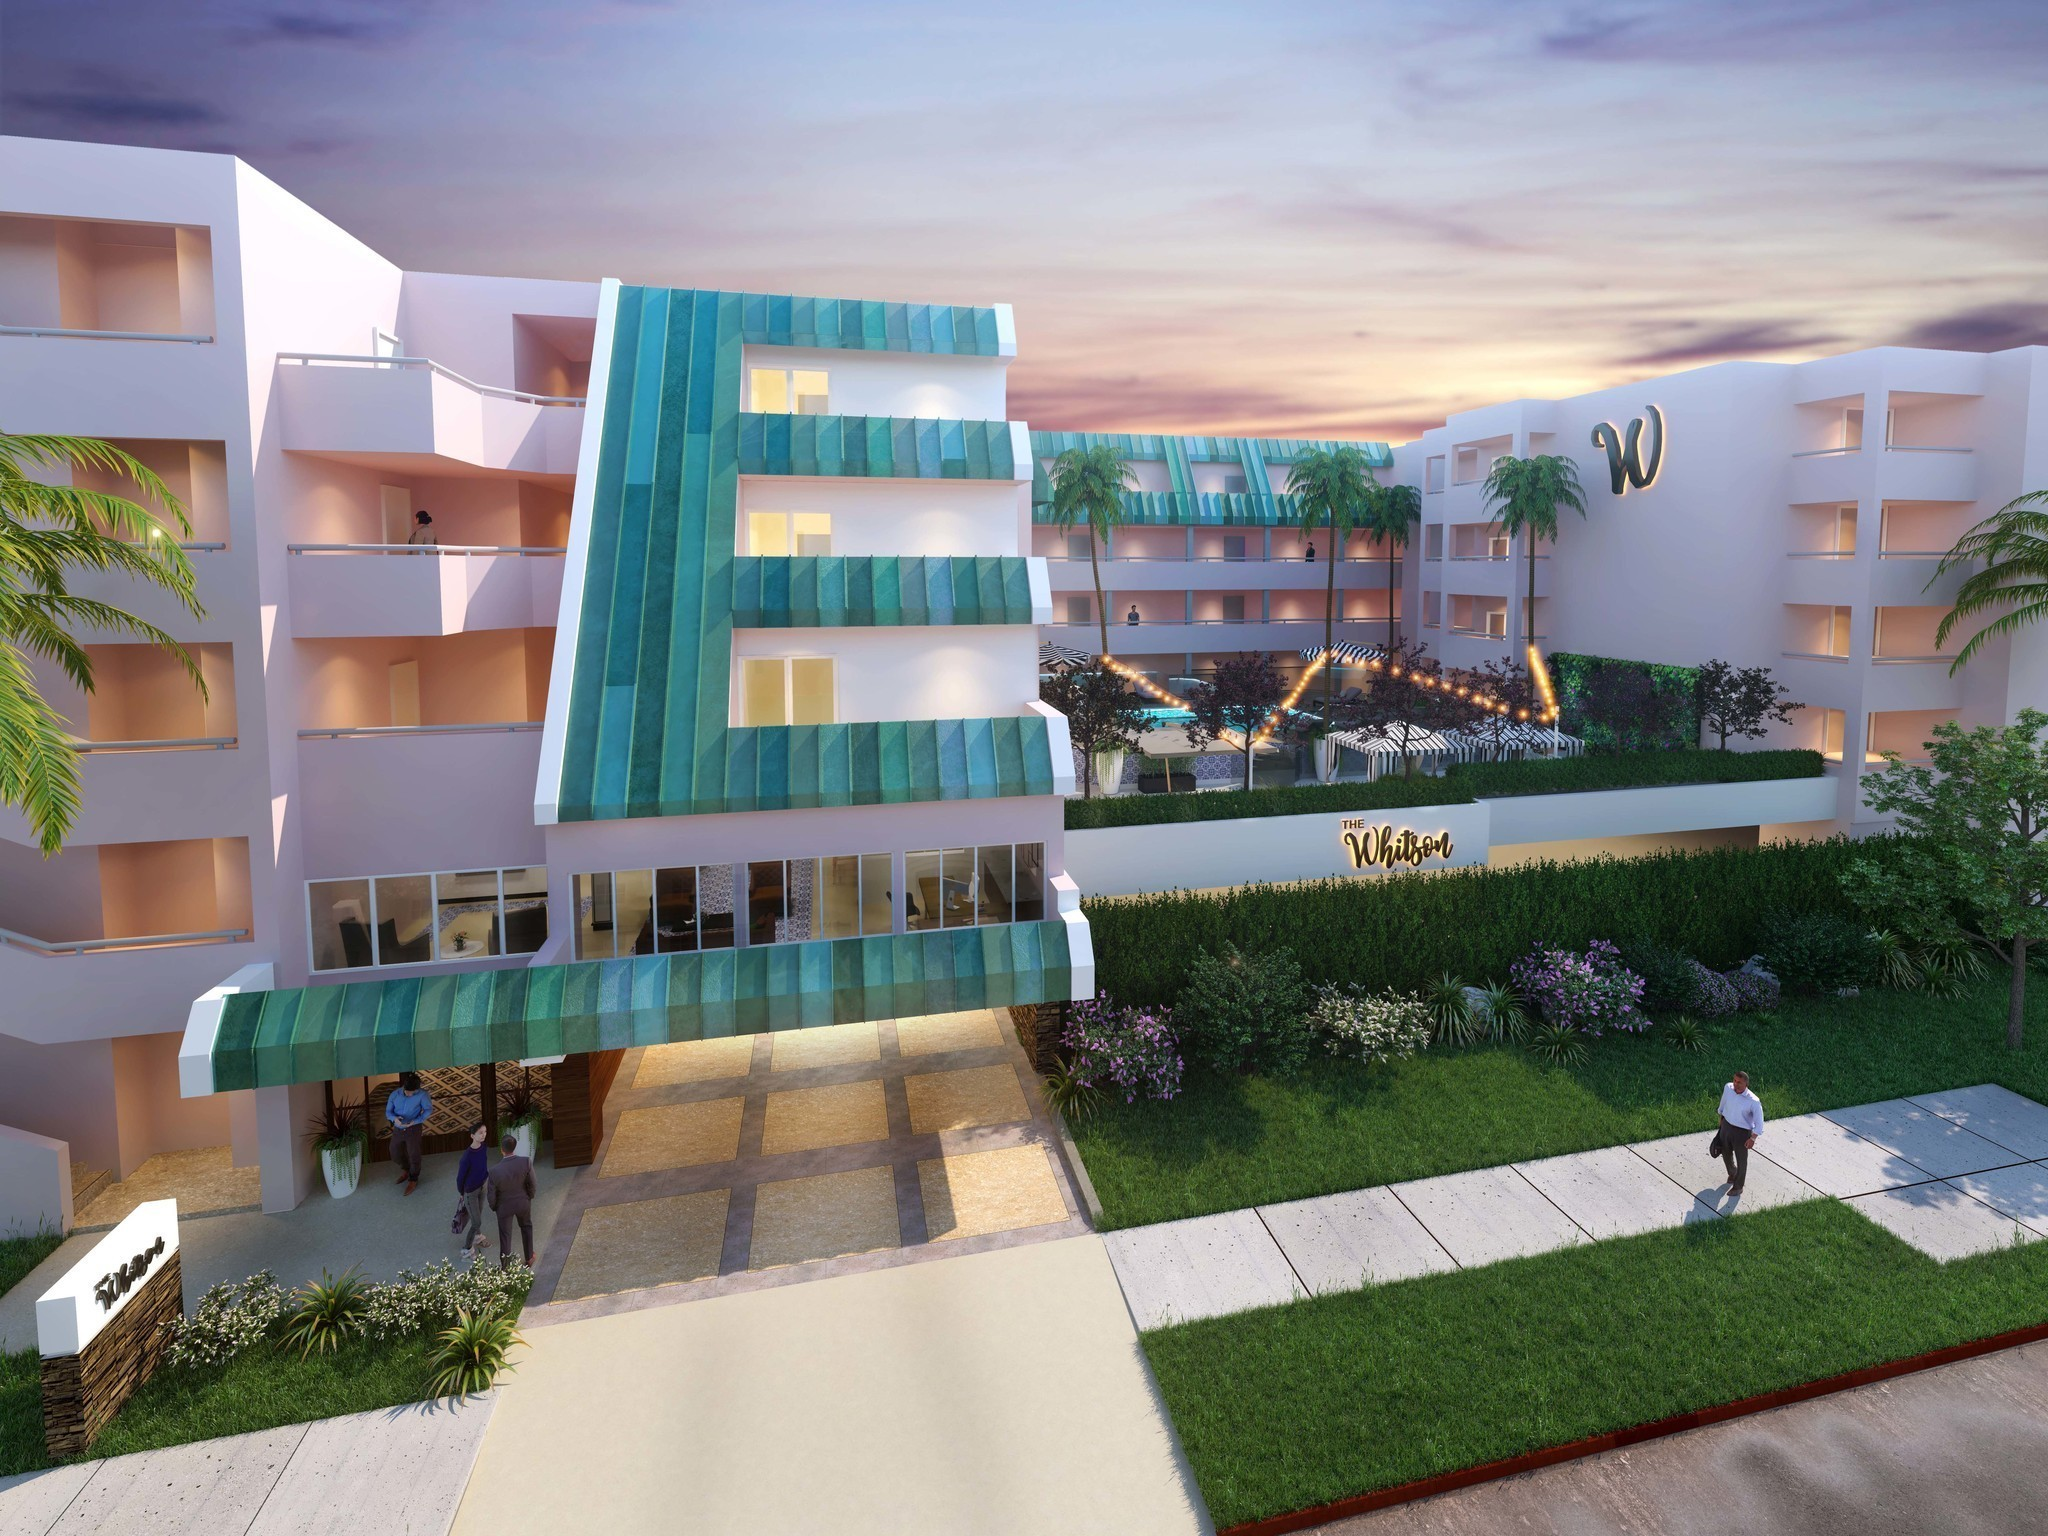 Sommerset Suites Hotel In Hillcrest To Become Apartments The San